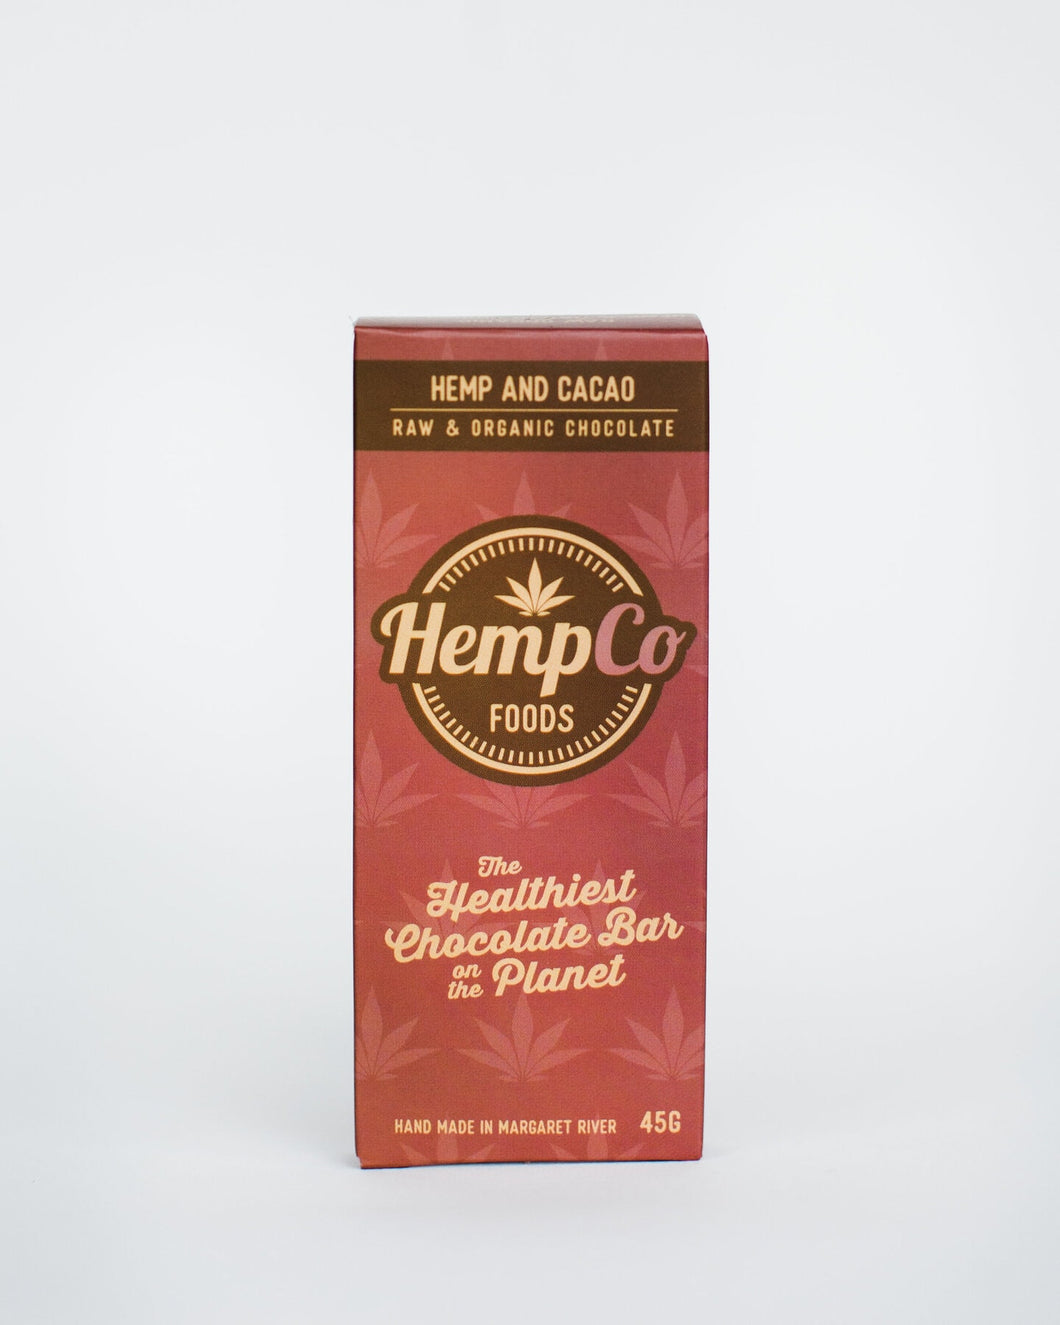 Hemp & Cacao Chocolate